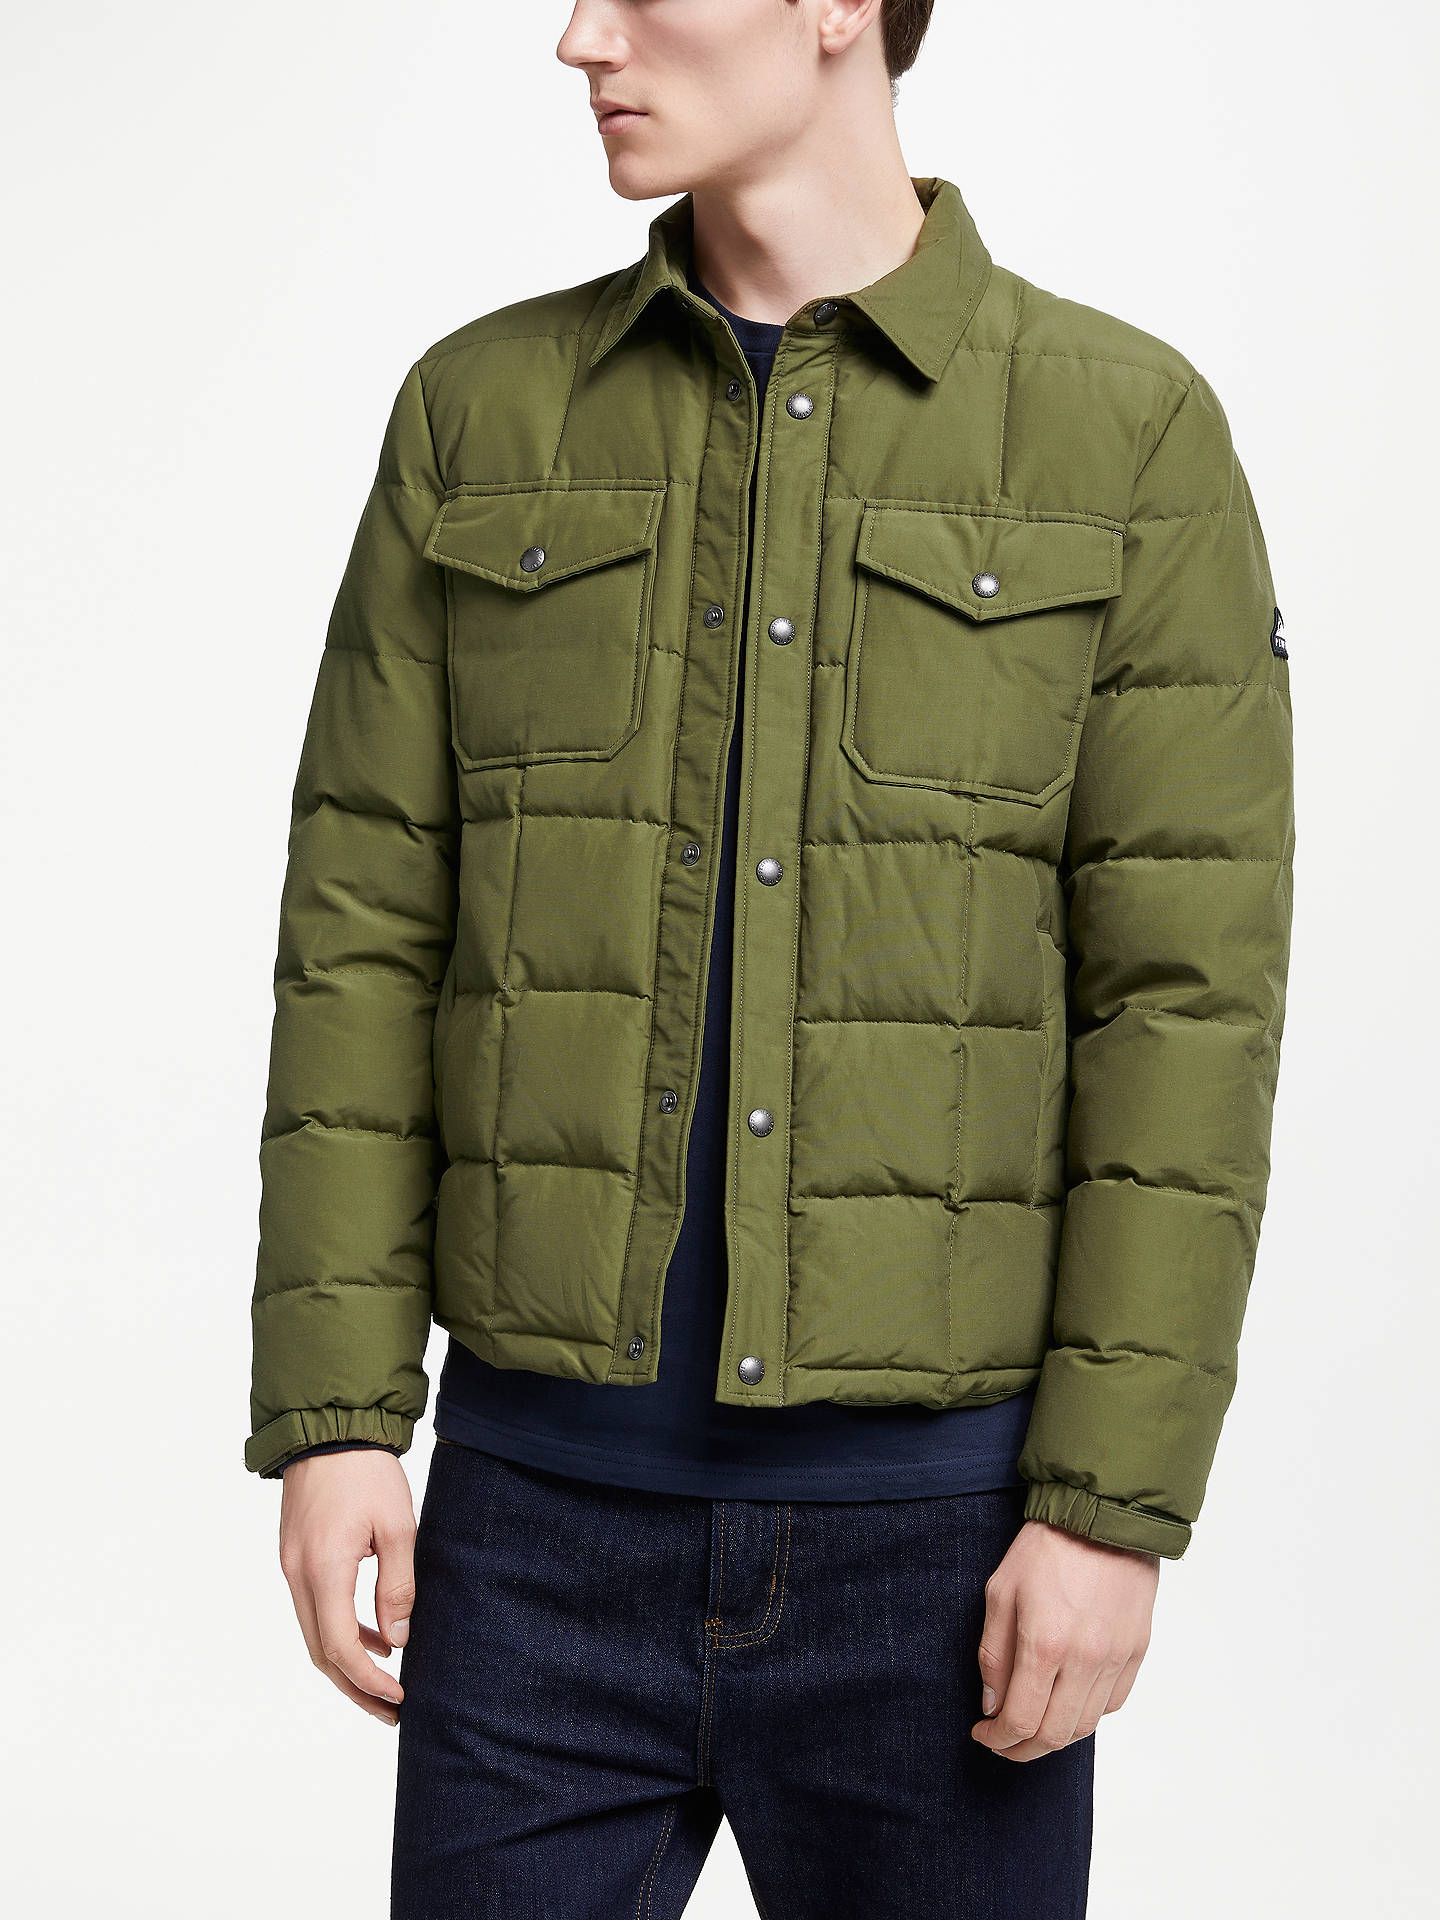 c7e2cc754 Penfield Crestone Quilted Jacket, Green at John Lewis & Partners